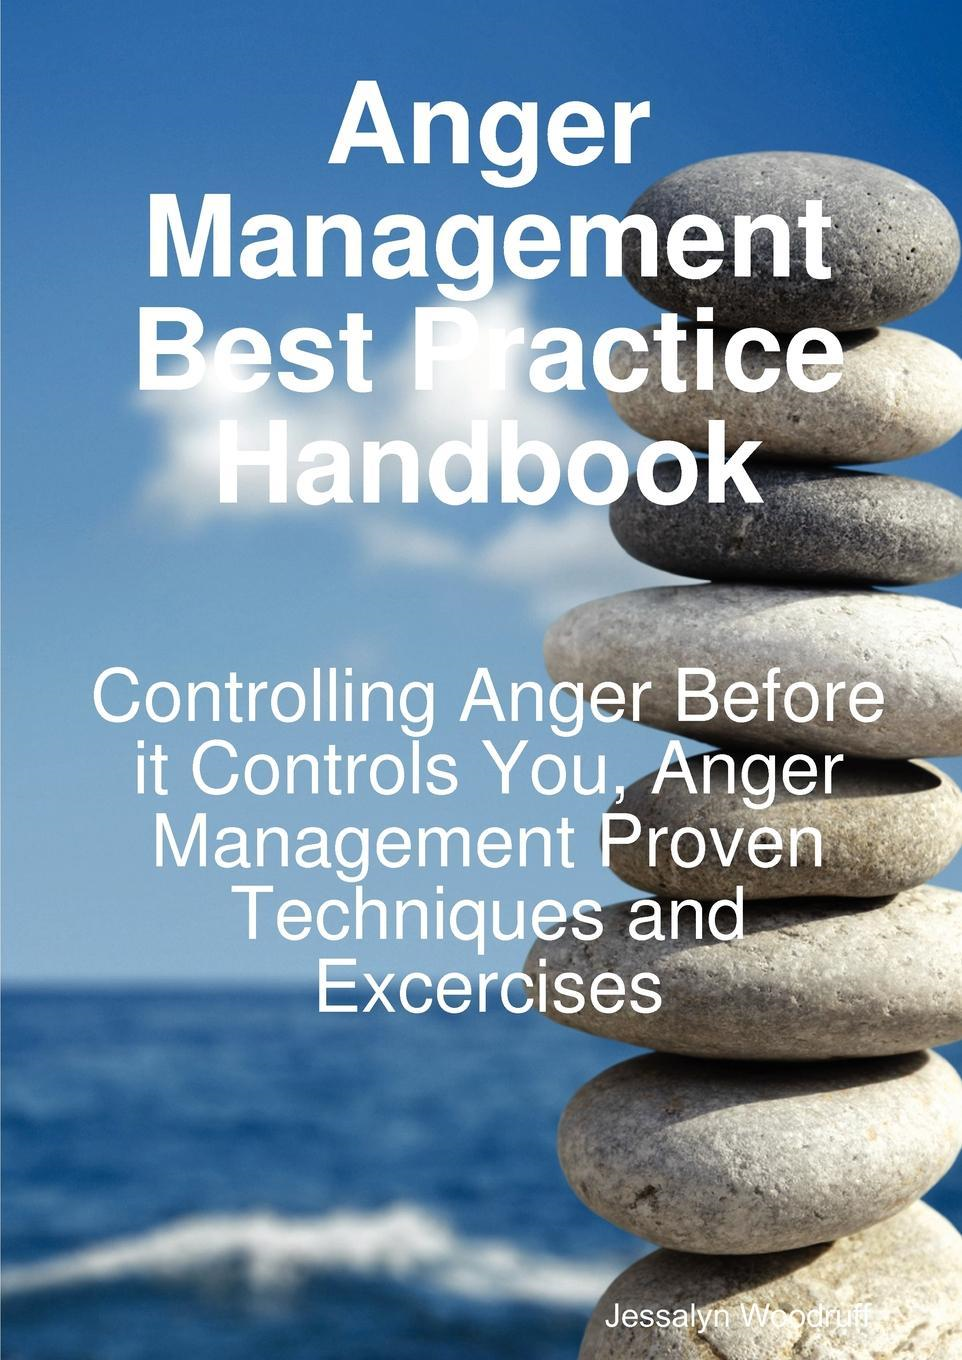 Anger Management Best Practice Handbook: Controlling Anger Before it Controls You - Anger Management Proven Techniques and Exercises